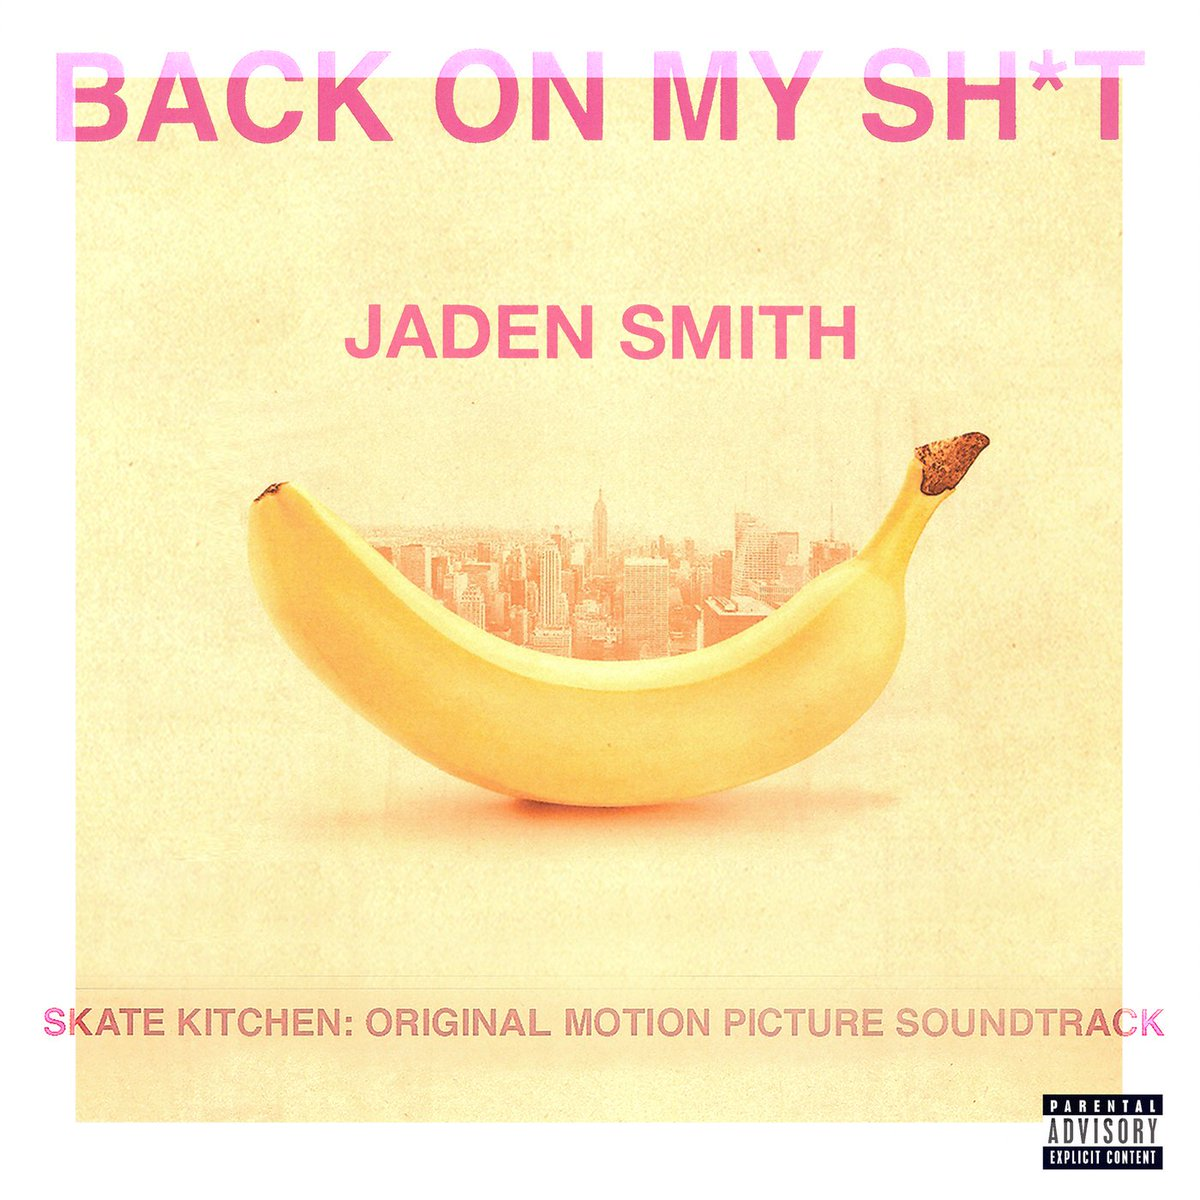 New Music: @officialjaden 'Back on My Shit' https://t.co/ZF0Wdzs3hv  https://t.co/3eX3tEochk